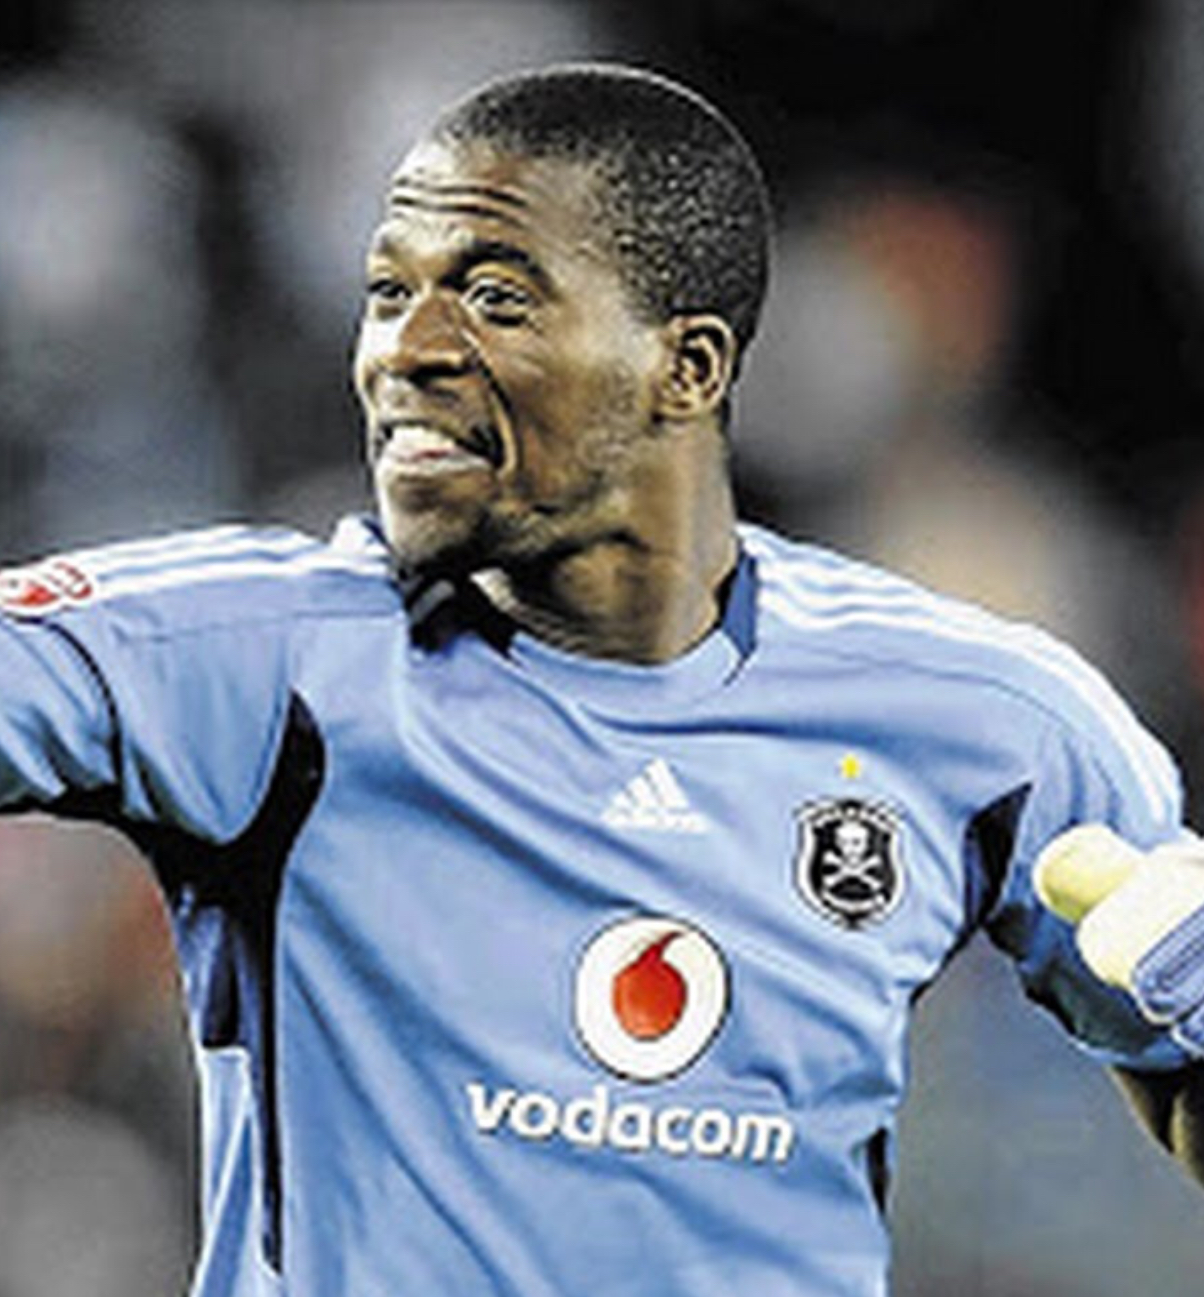 Five suspects arrested in Senzo Meyiwa murder case